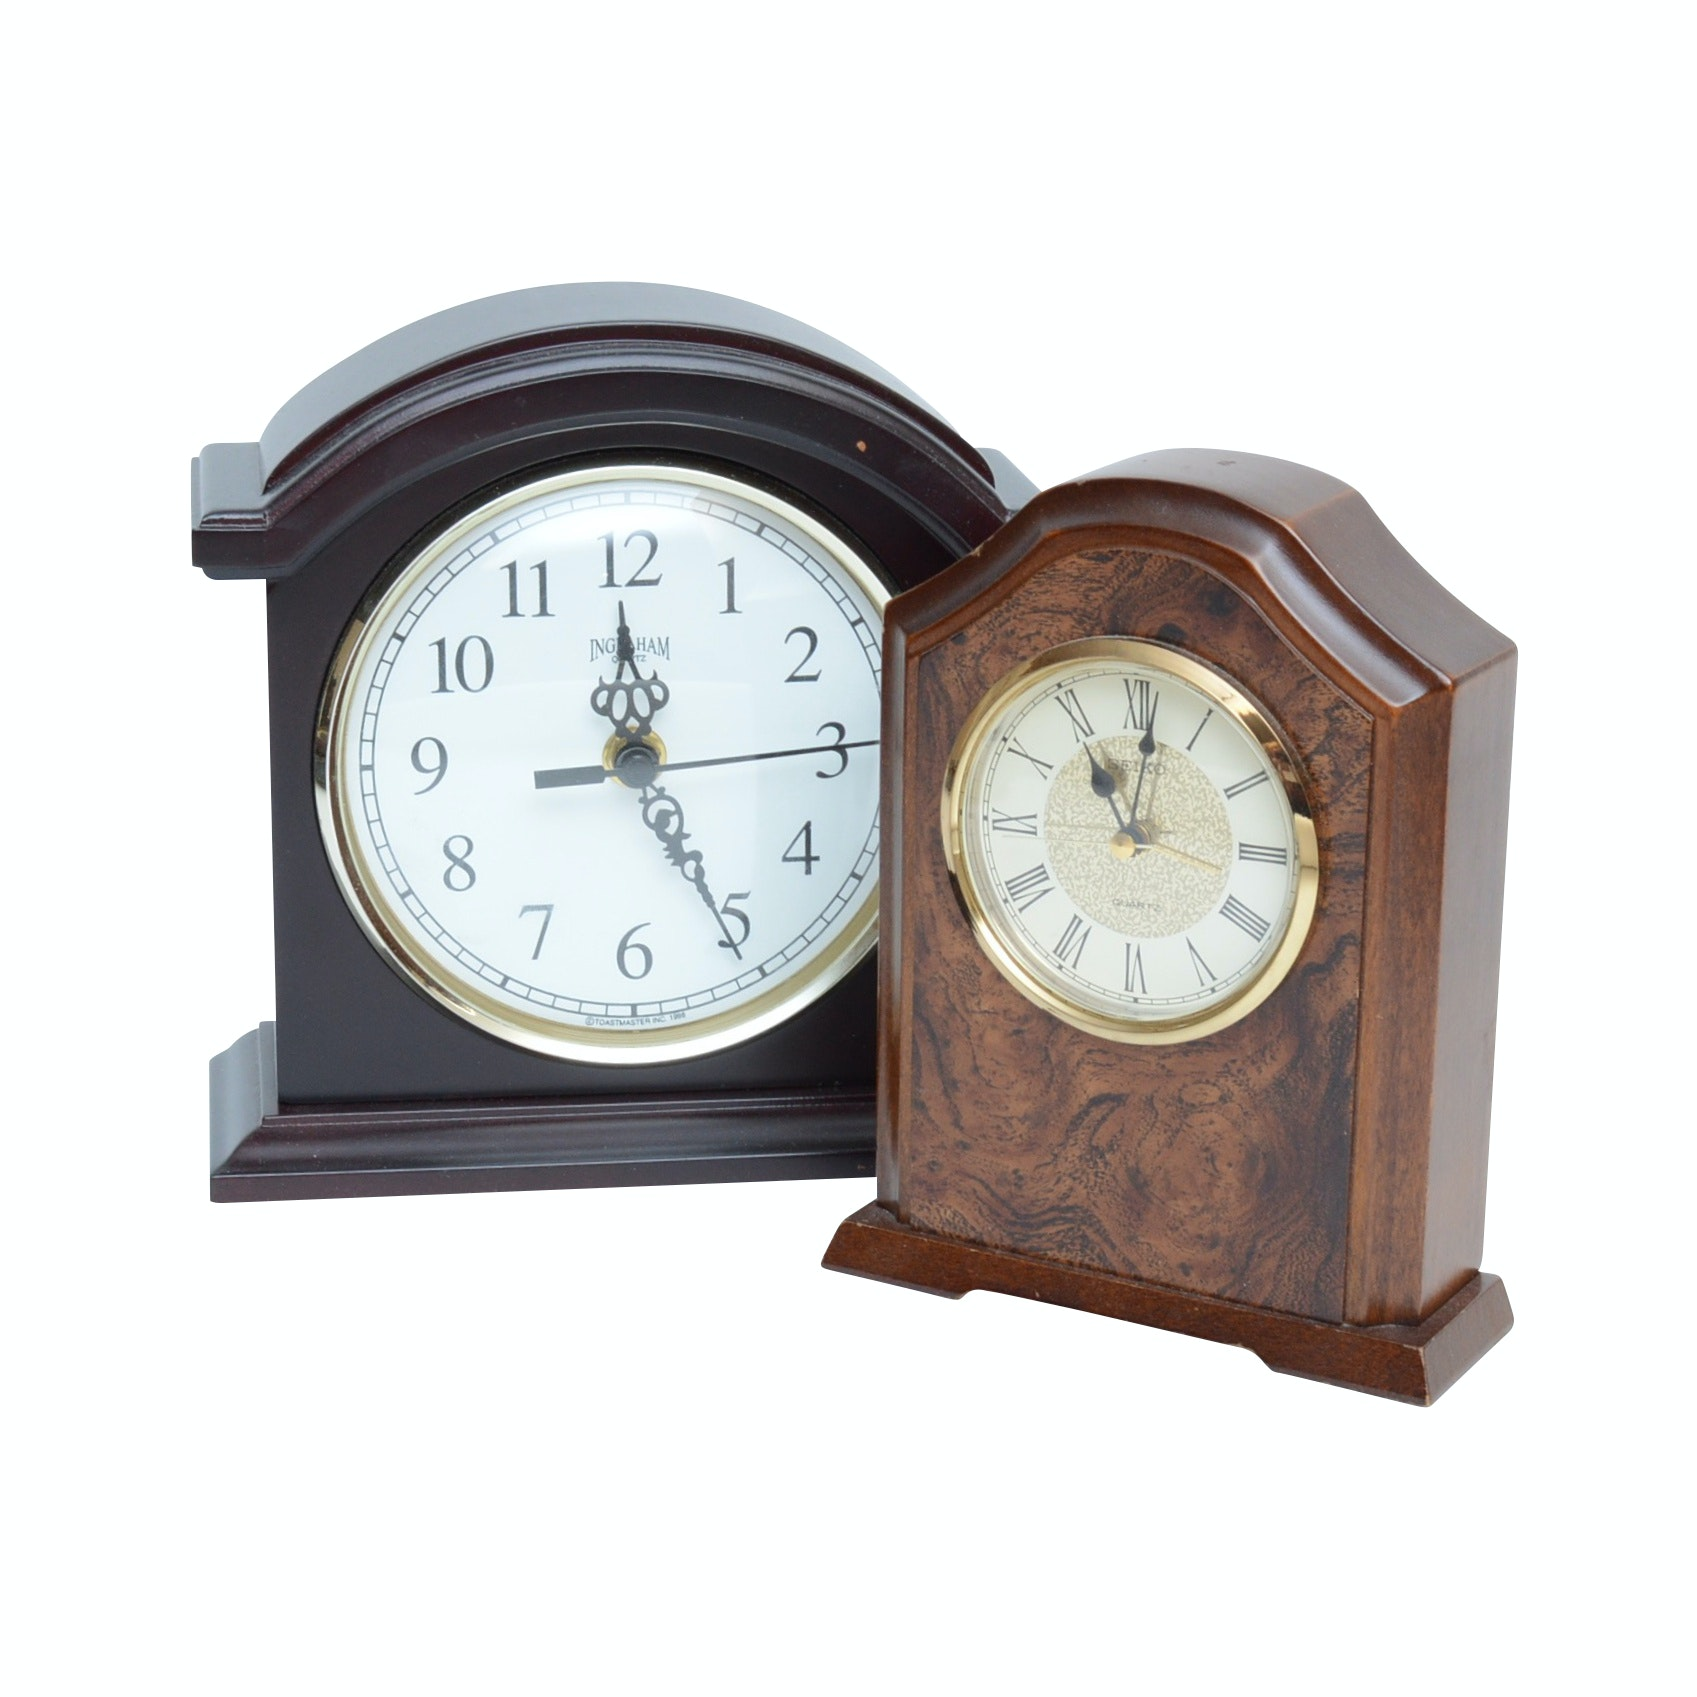 Ingraham and Seiko Desk Clocks